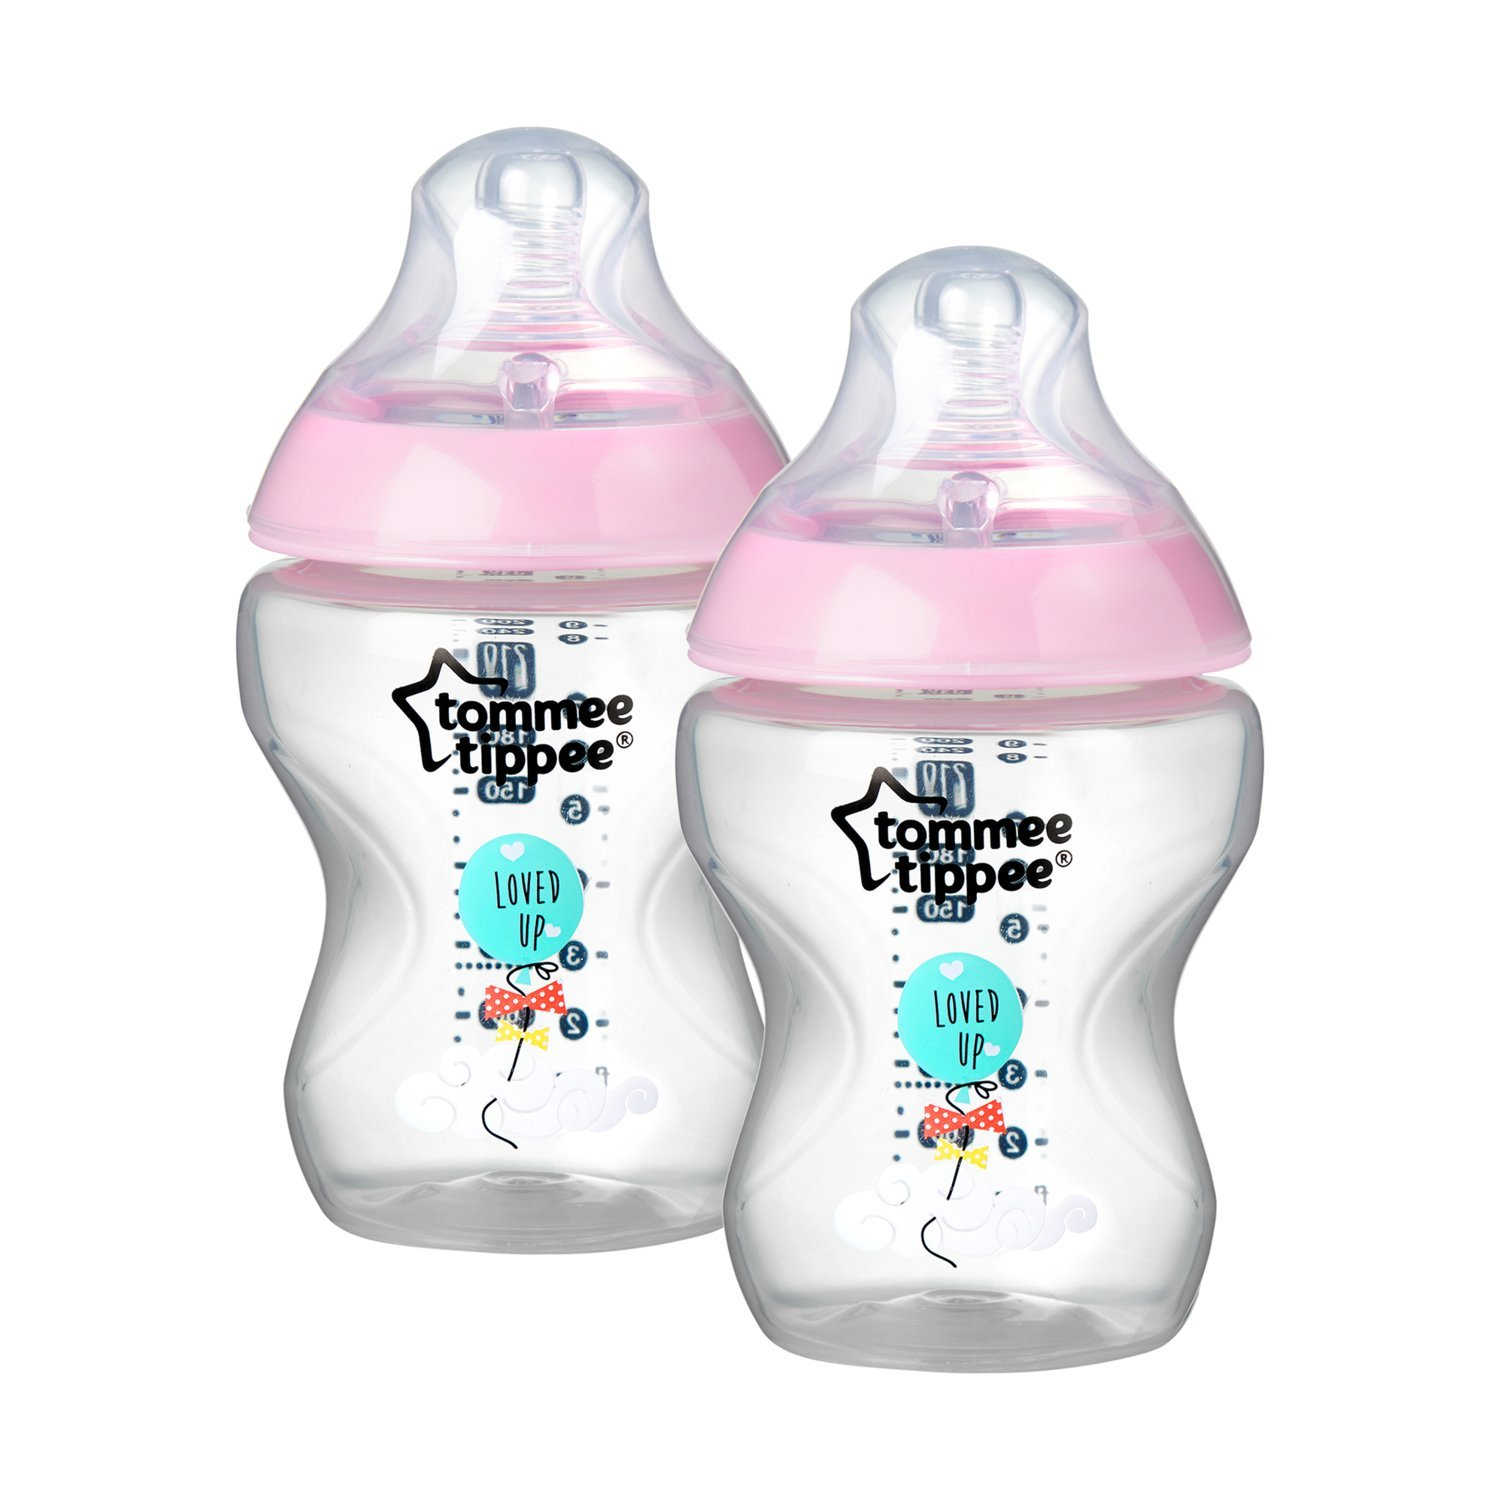 Tommee Tippee Bottles, Girls Deco, 9 Ounce, 2-Count